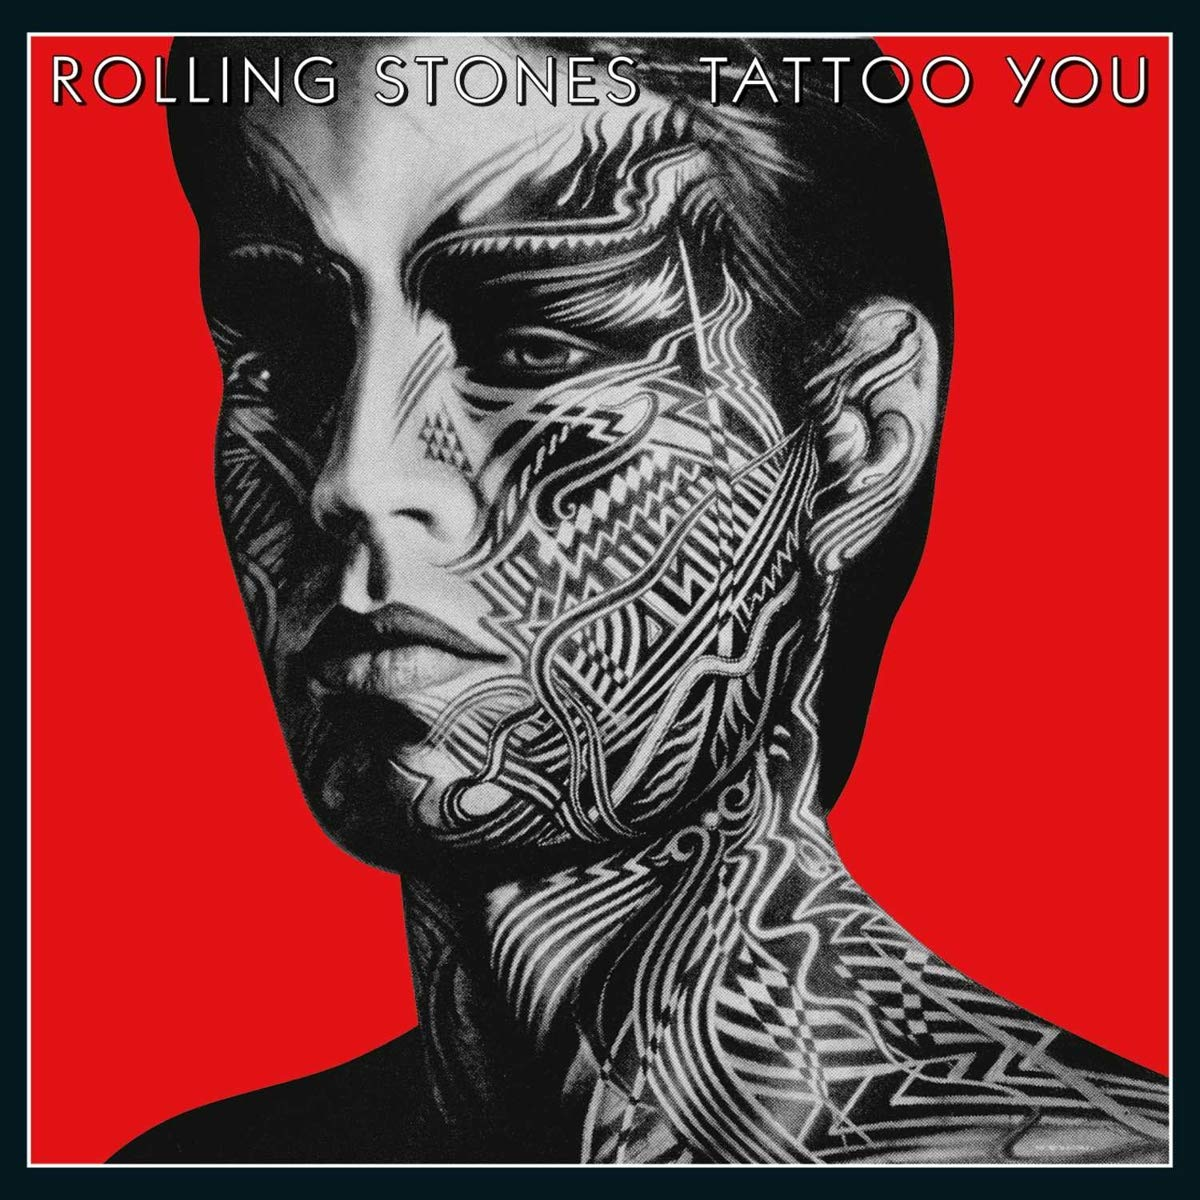 50 Years, 50 Albums 1981: Rolling Stones 'Tattoo You'